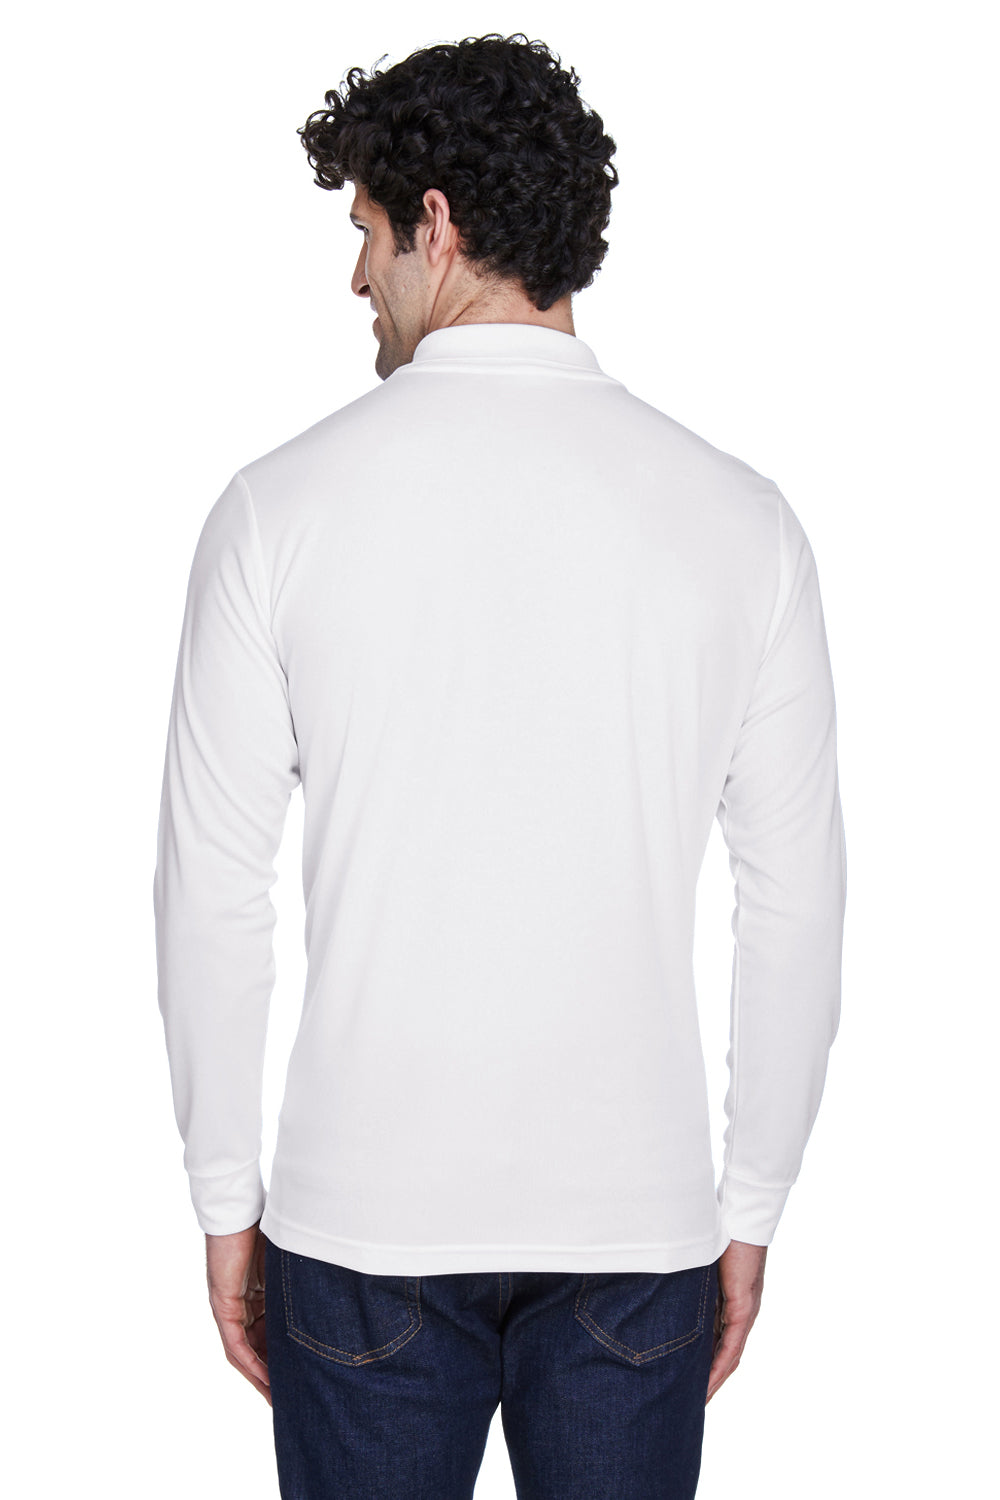 Core 365 88192 Mens Pinnacle Performance Moisture Wicking Long Sleeve Polo Shirt White Back